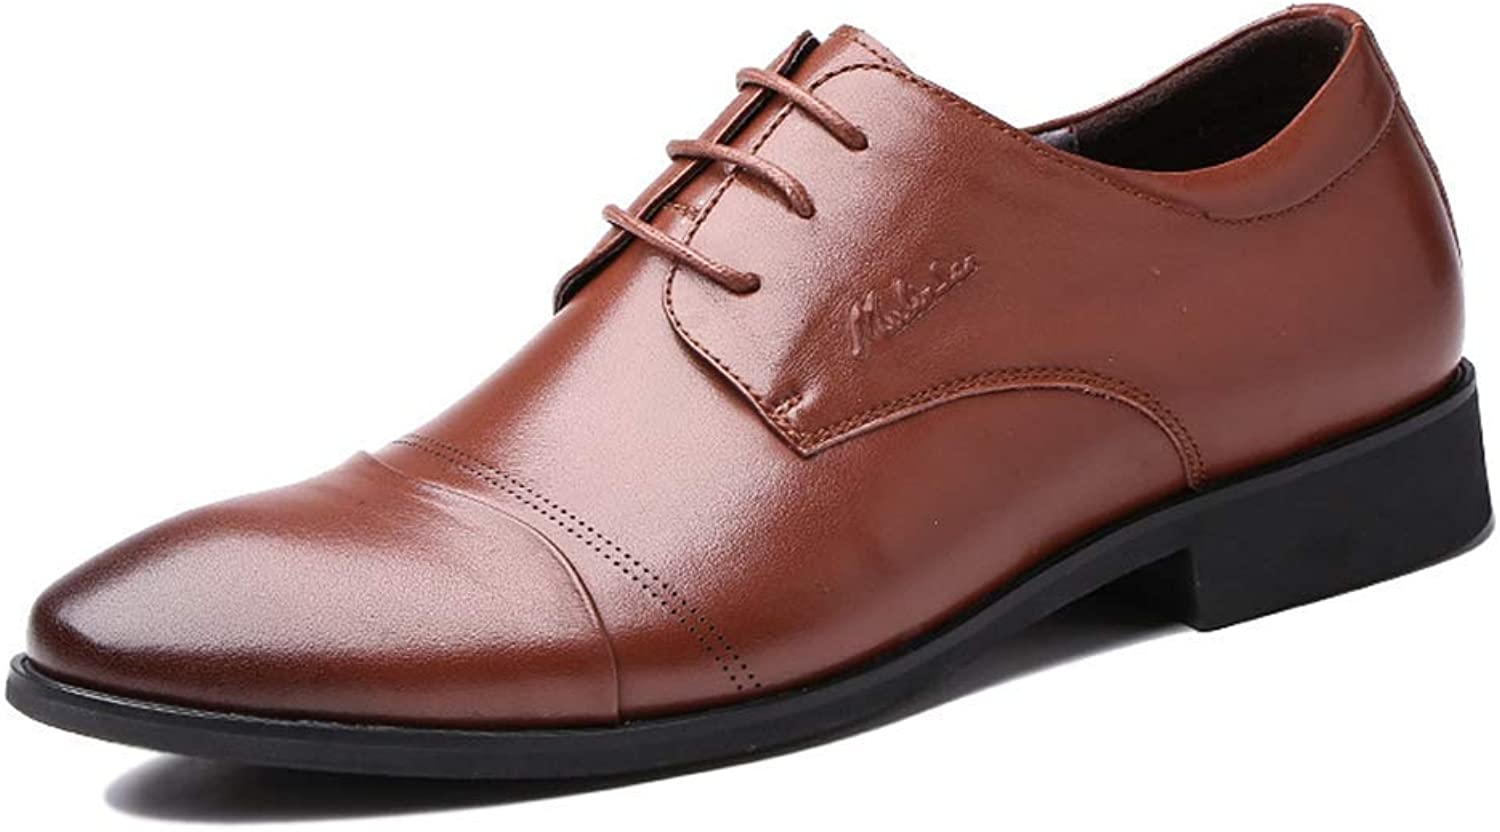 FuweiEncore Mens Business Business Business Formale Kleid Lederschuhe, Männer Casual Lace Up Derby Schuhe Bequeme Loafers für Männer (Farbe : Braun, Größe : 9.5 US/8.5 UK) B07KK9SFK7  af5048